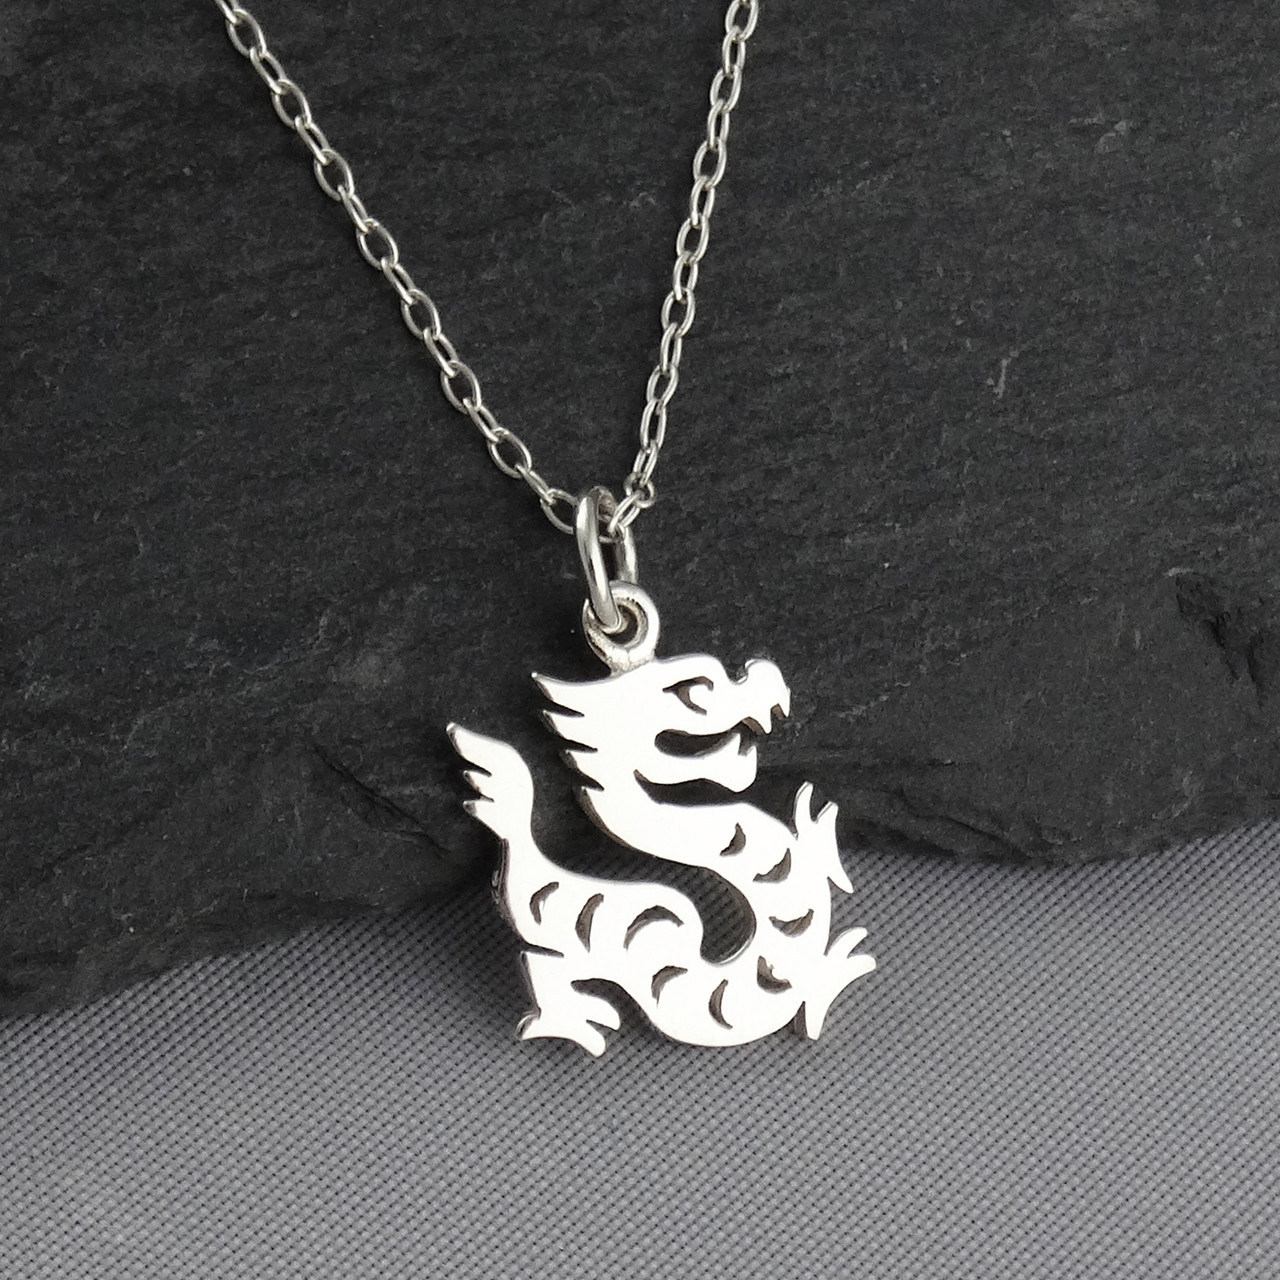 Year of the dragon necklace sterling silver fashionjunkie4life year of the dragon necklace sterling silver chinese zodiac pendant aloadofball Choice Image